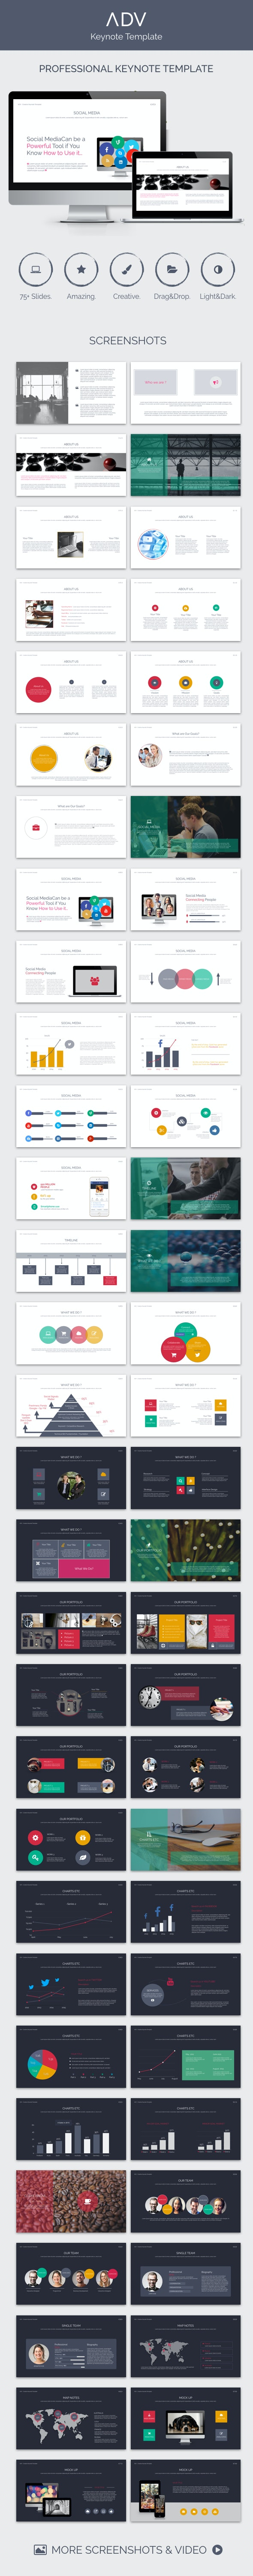 ADV Keynote Template - Creative Keynote Templates